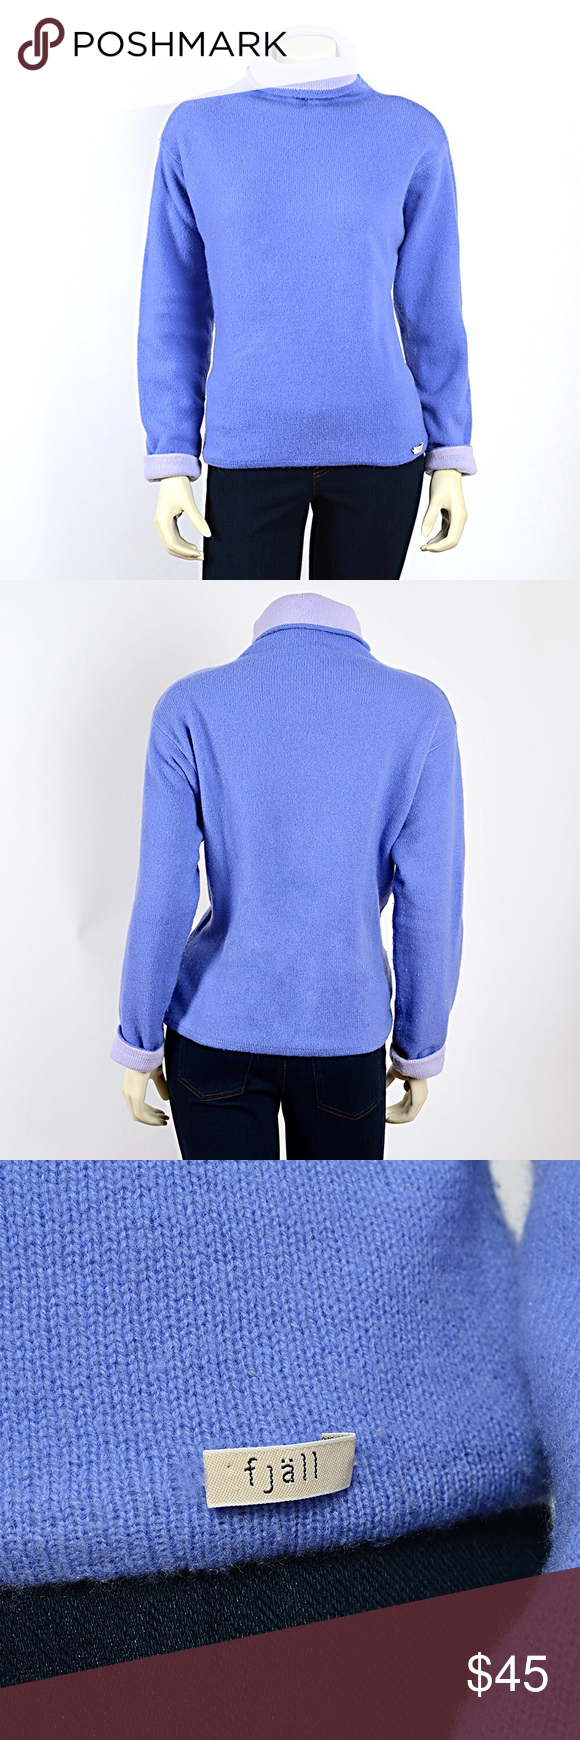 Reversible Blue Wool and Cashmere Sweater | Blue wool, Cashmere ...